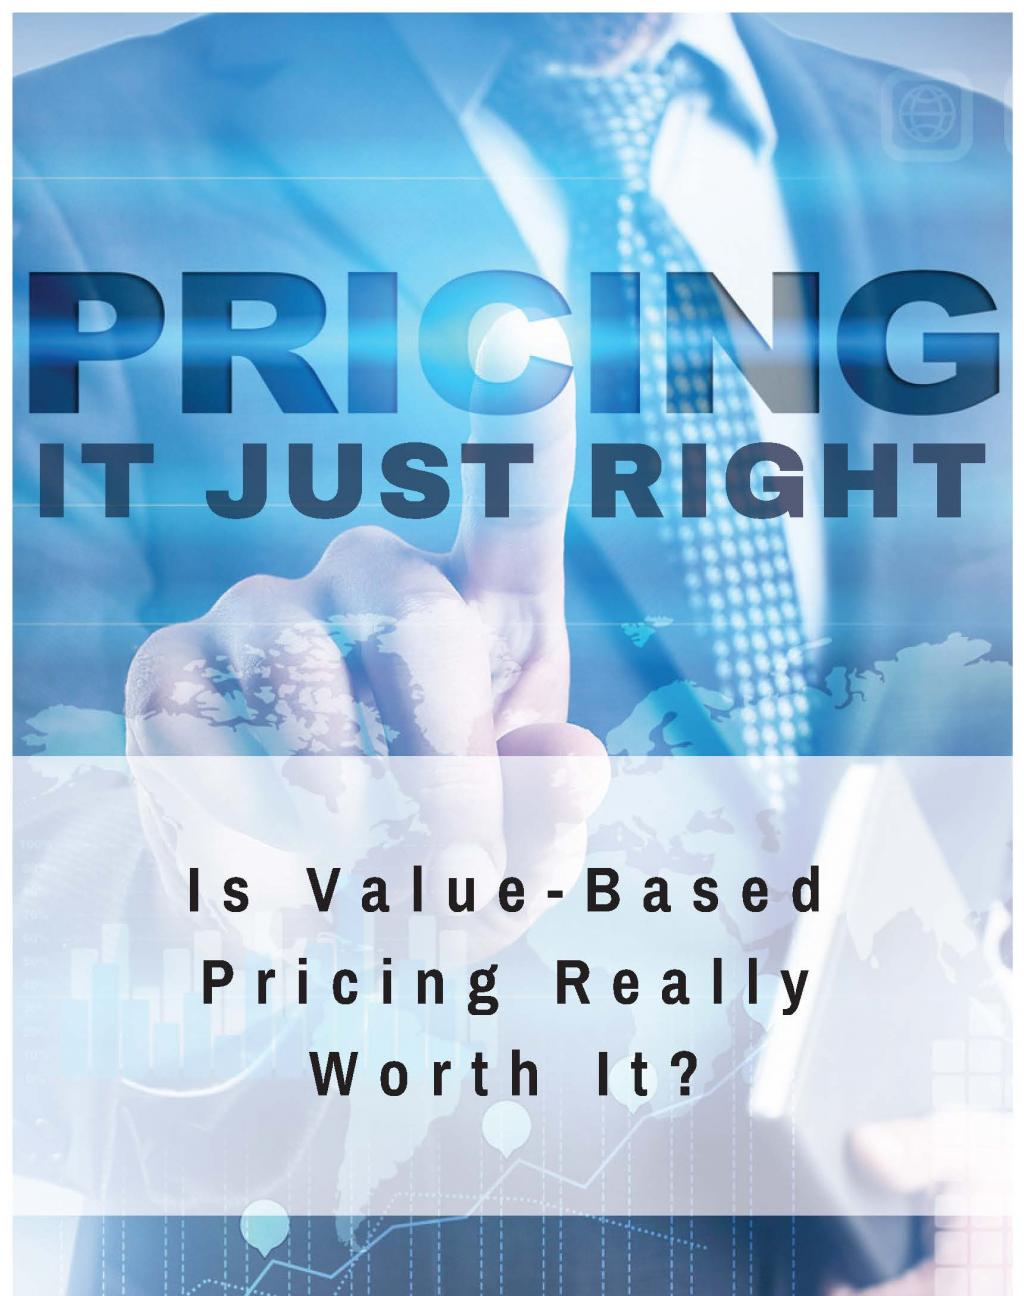 Read the Article - Is Value-Based Pricing Really Worth It?